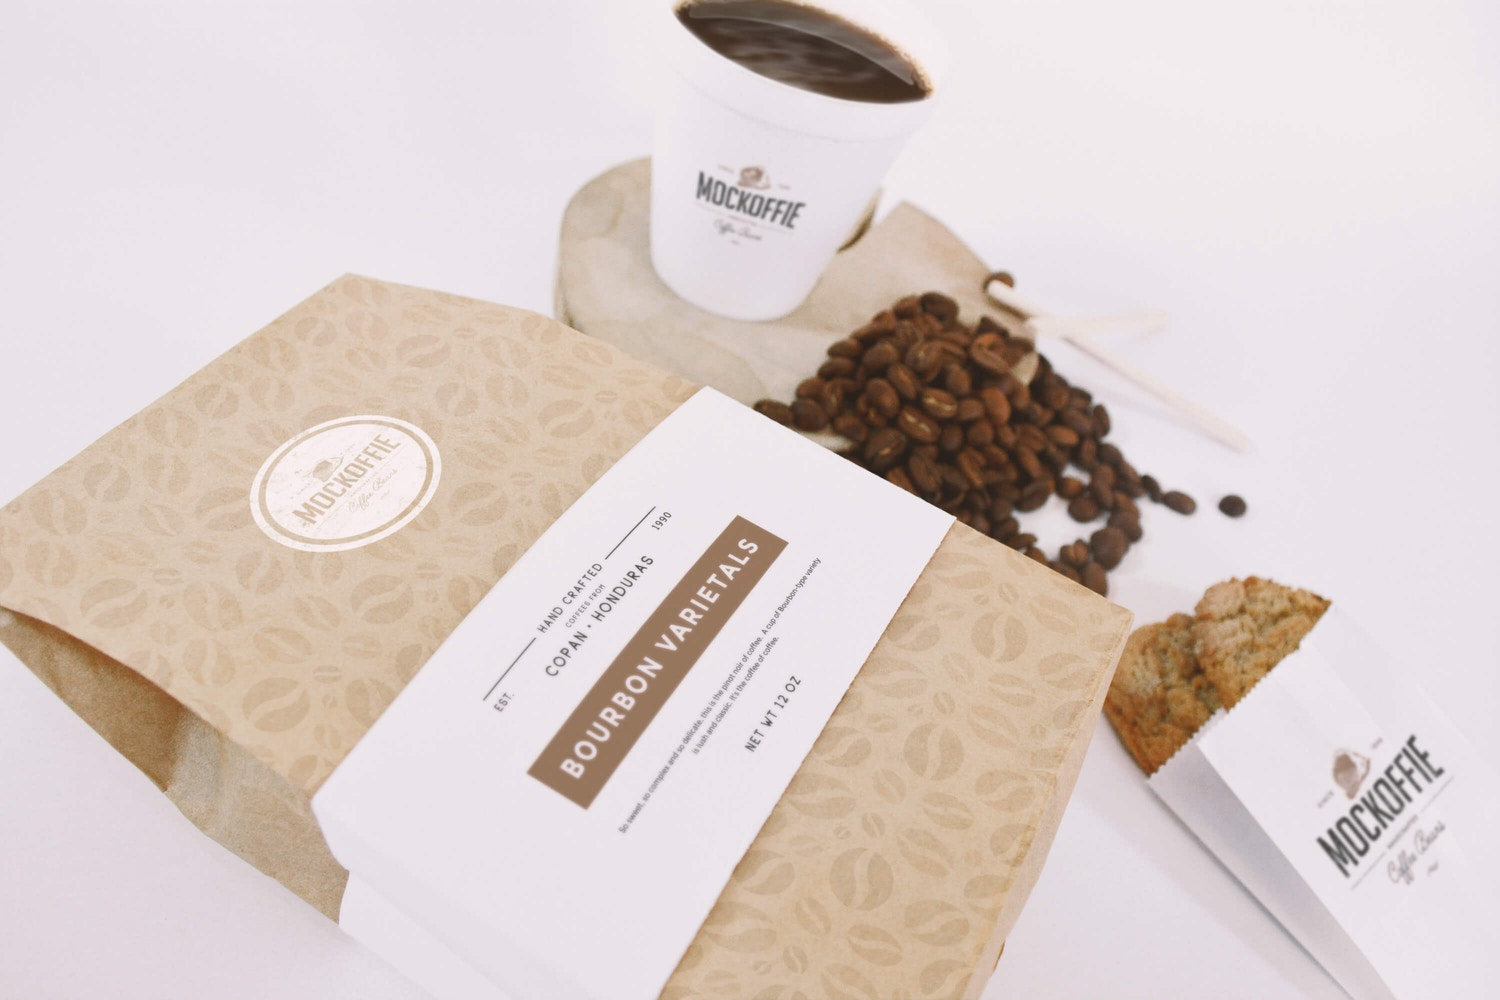 Coffee Bag and Cup Mockup Perspective Top View by Eduardo Mejia on Original Mockups